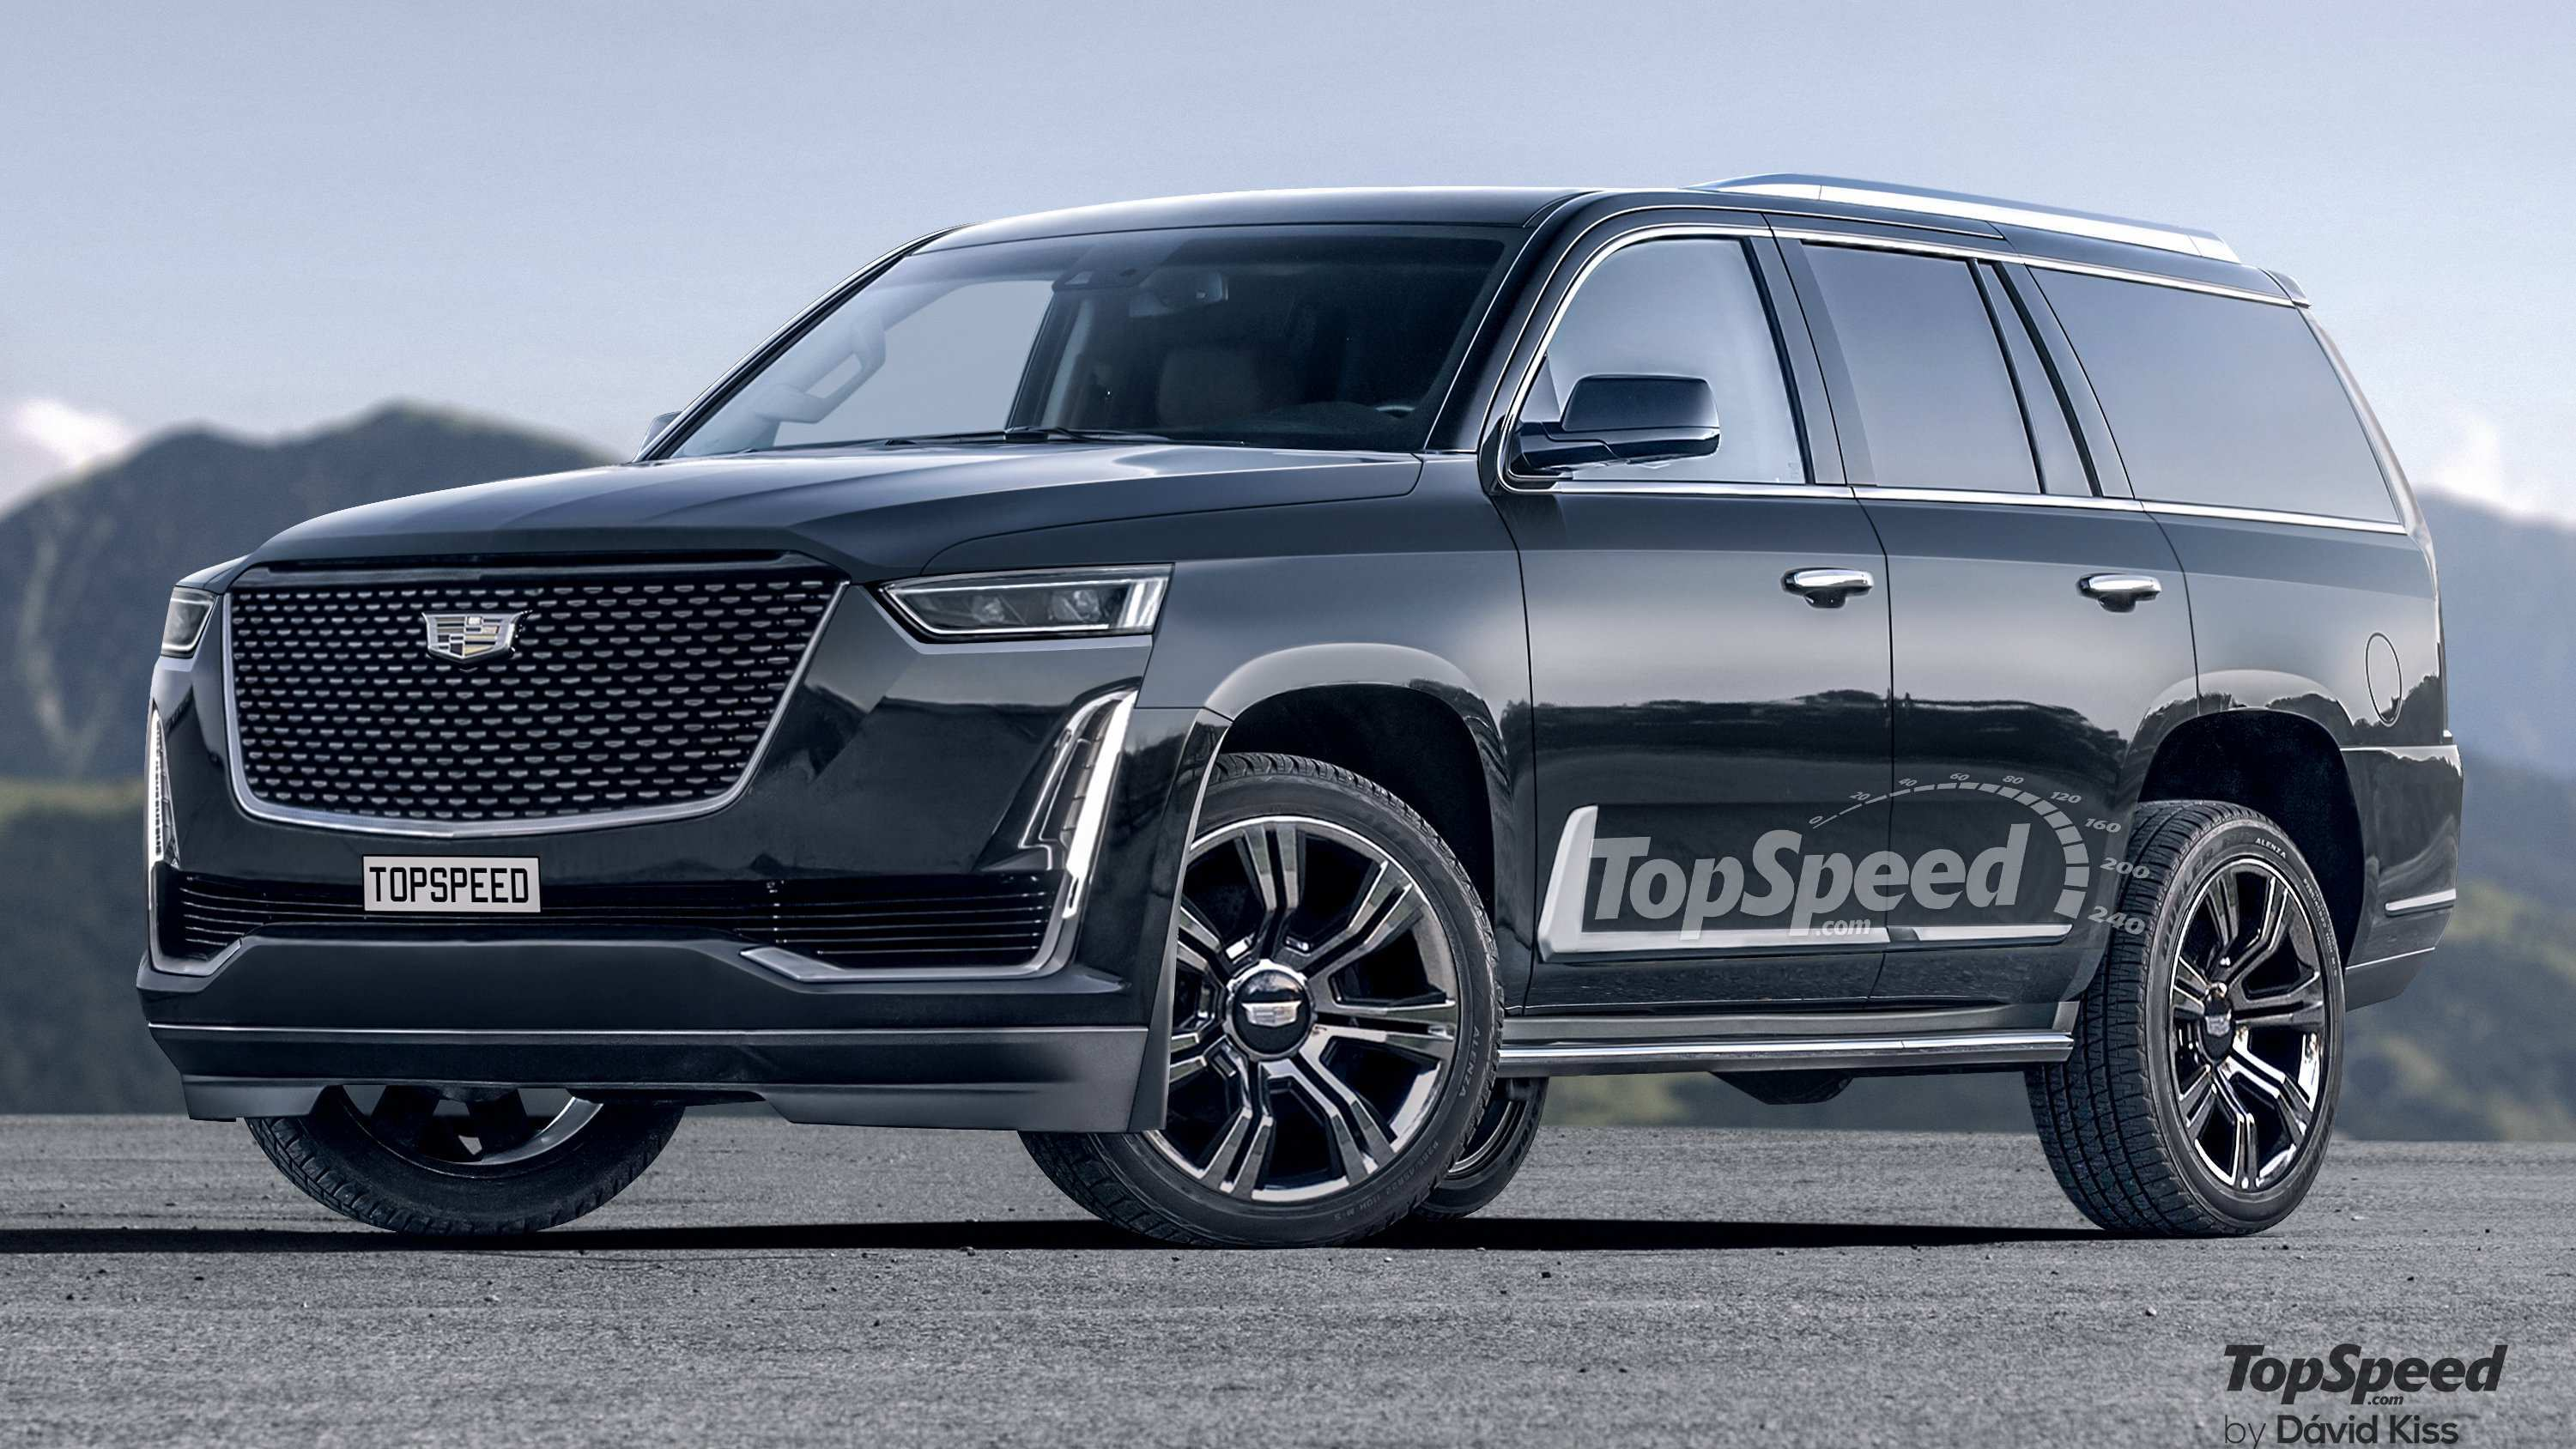 14 All New Cadillac Escalade New Body Style 2020 Wallpaper